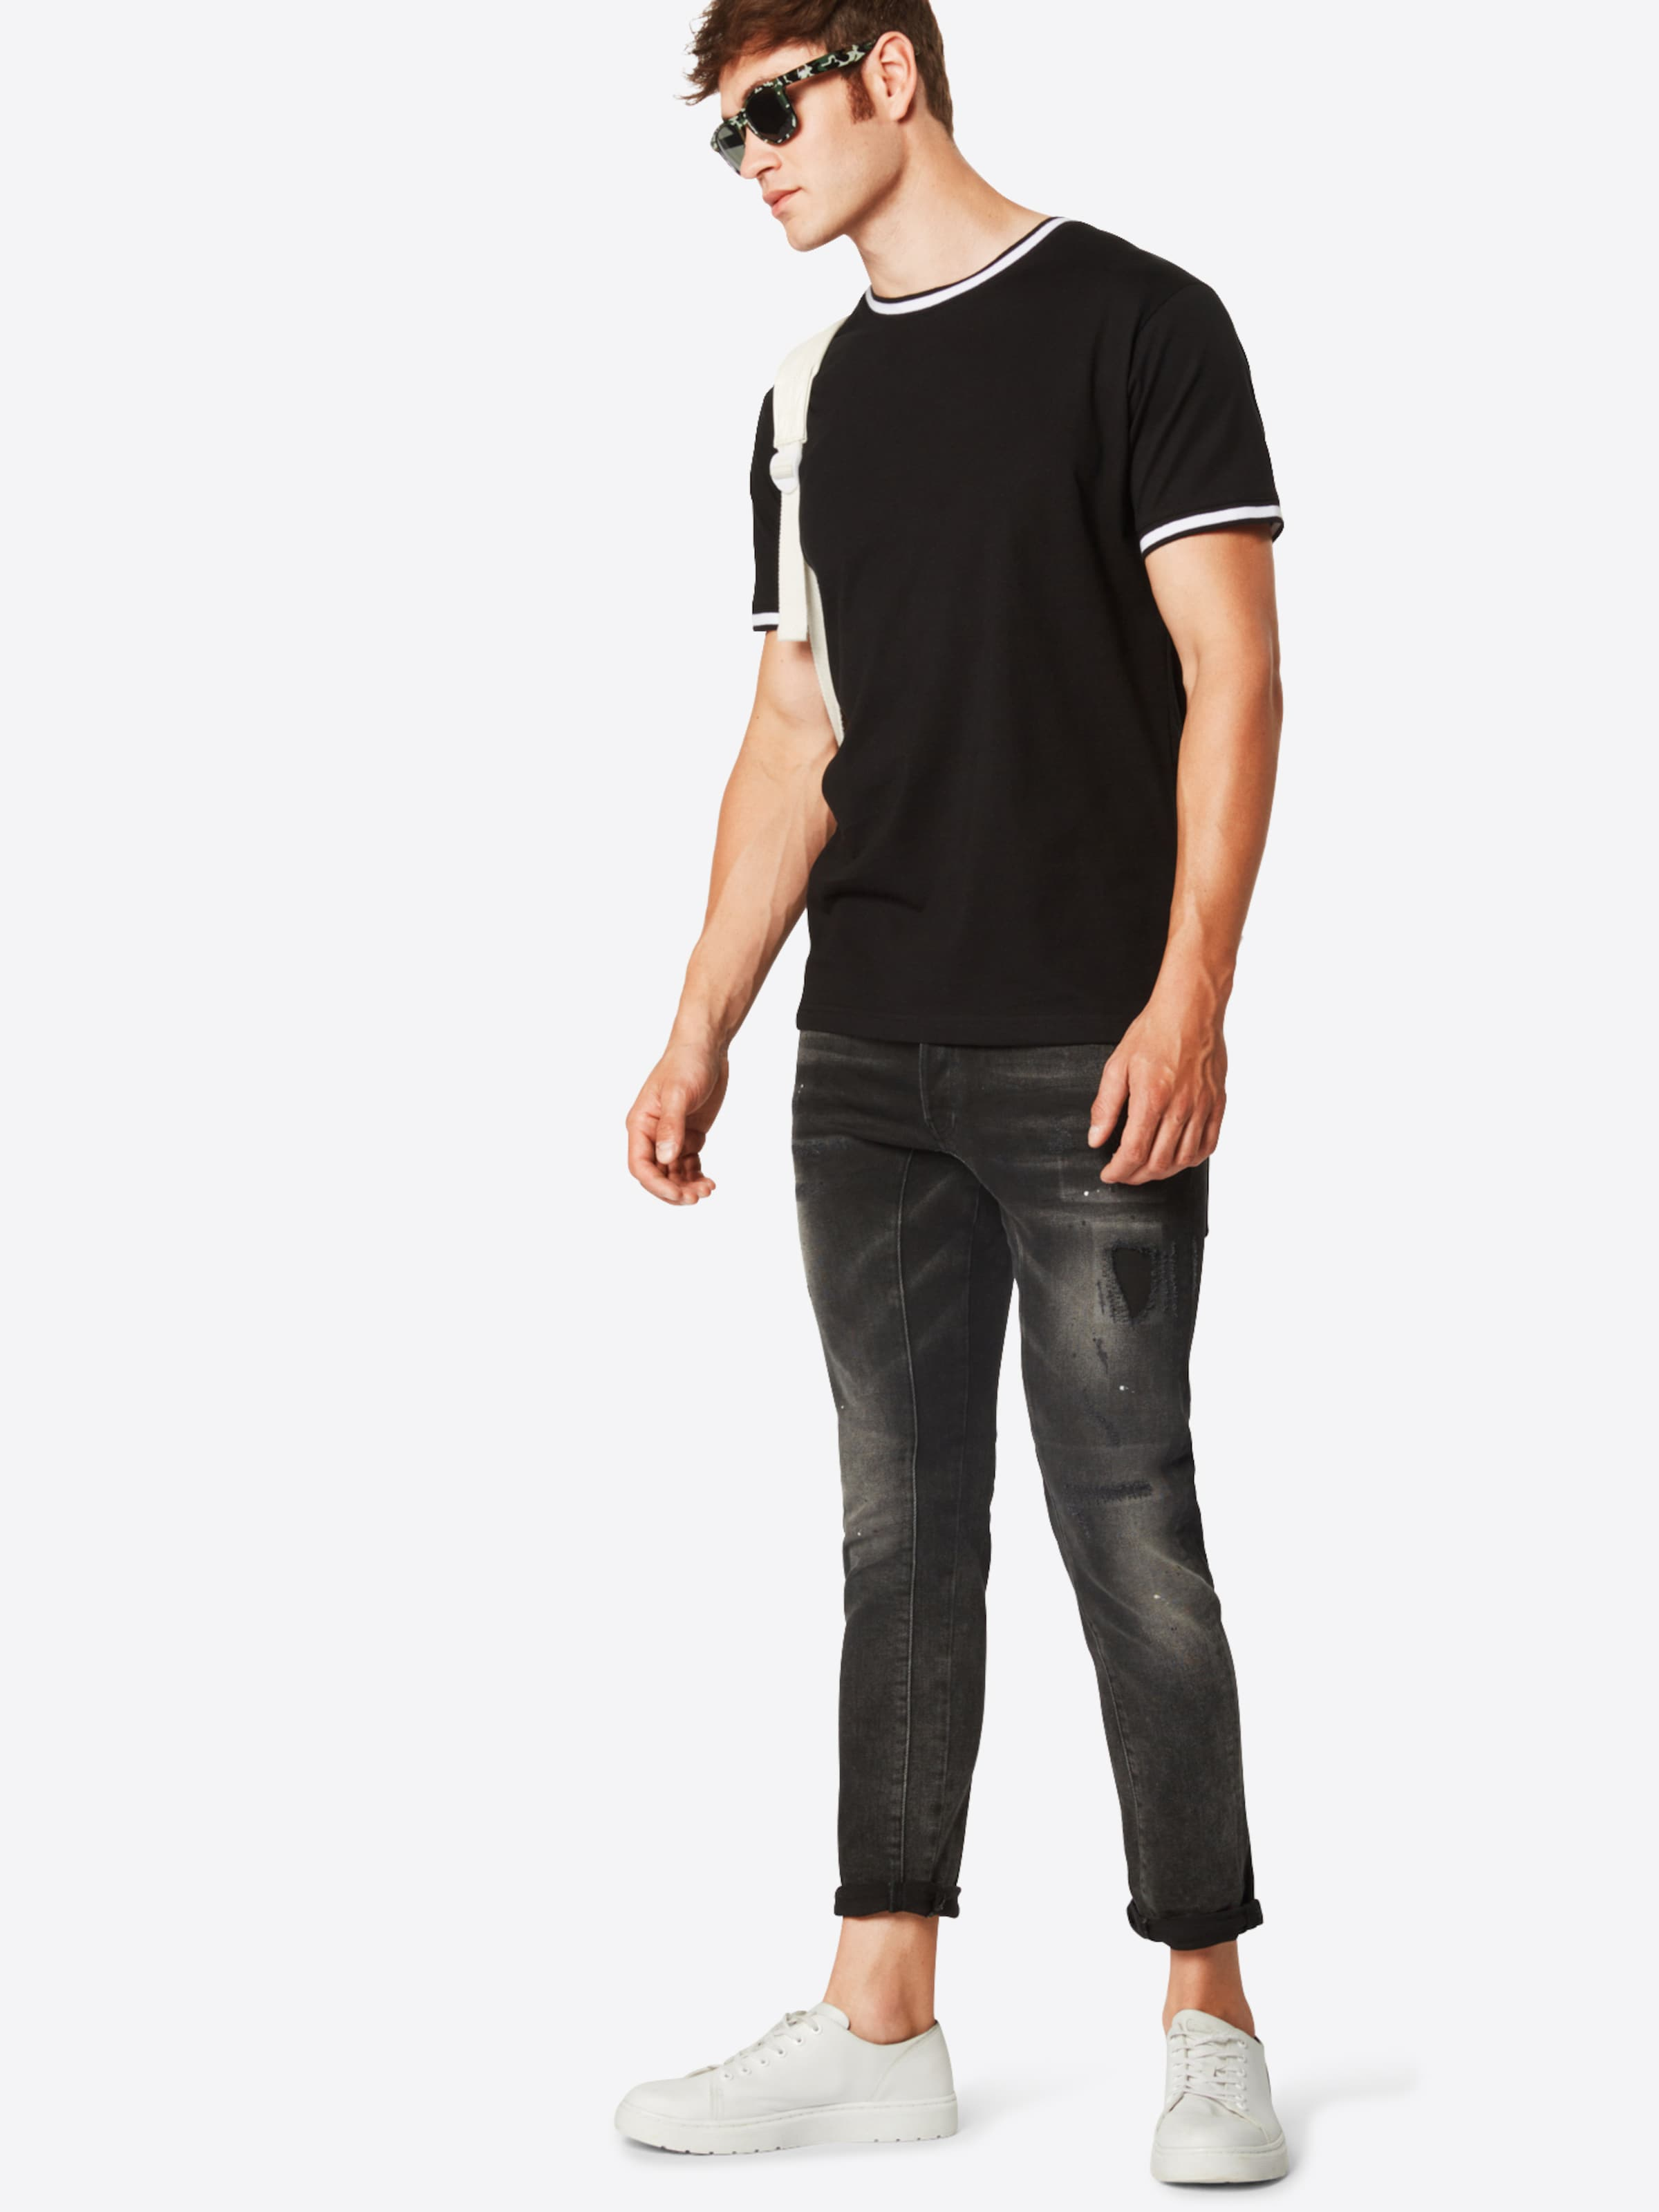 Tee' shirt Classics En 'collage NoirBlanc Urban T Pocket LjVGzMUpqS